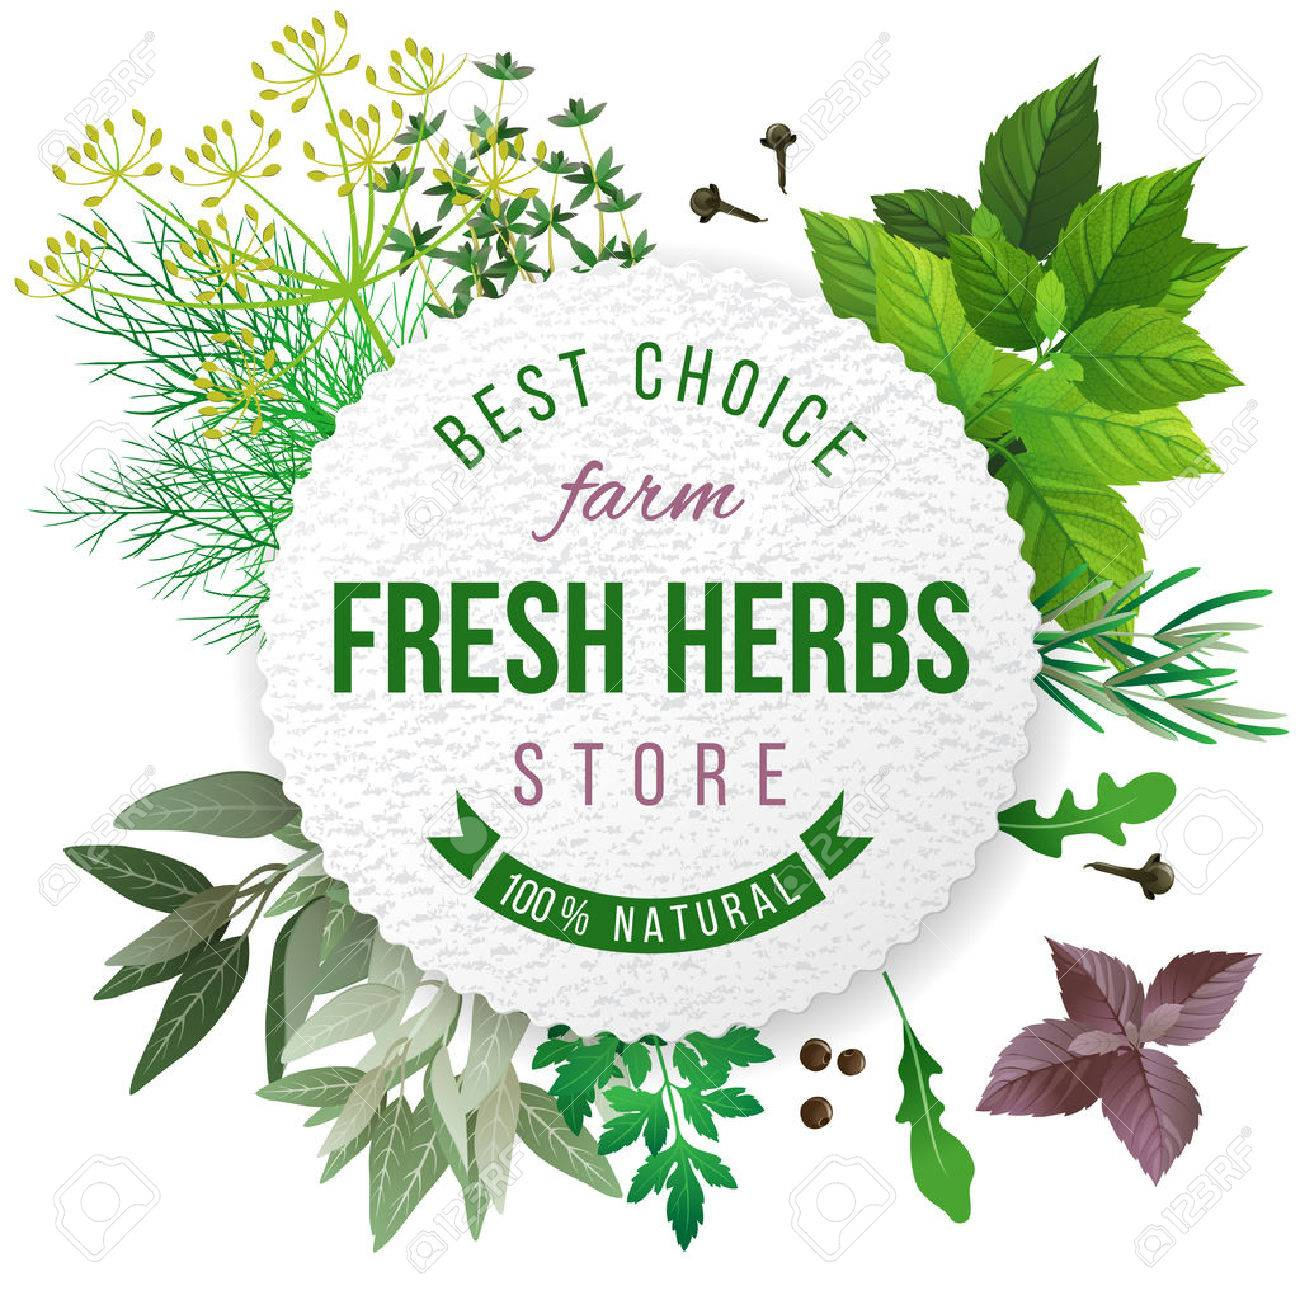 Fresh herbs store emblem - easy to use in your own design - 43870911